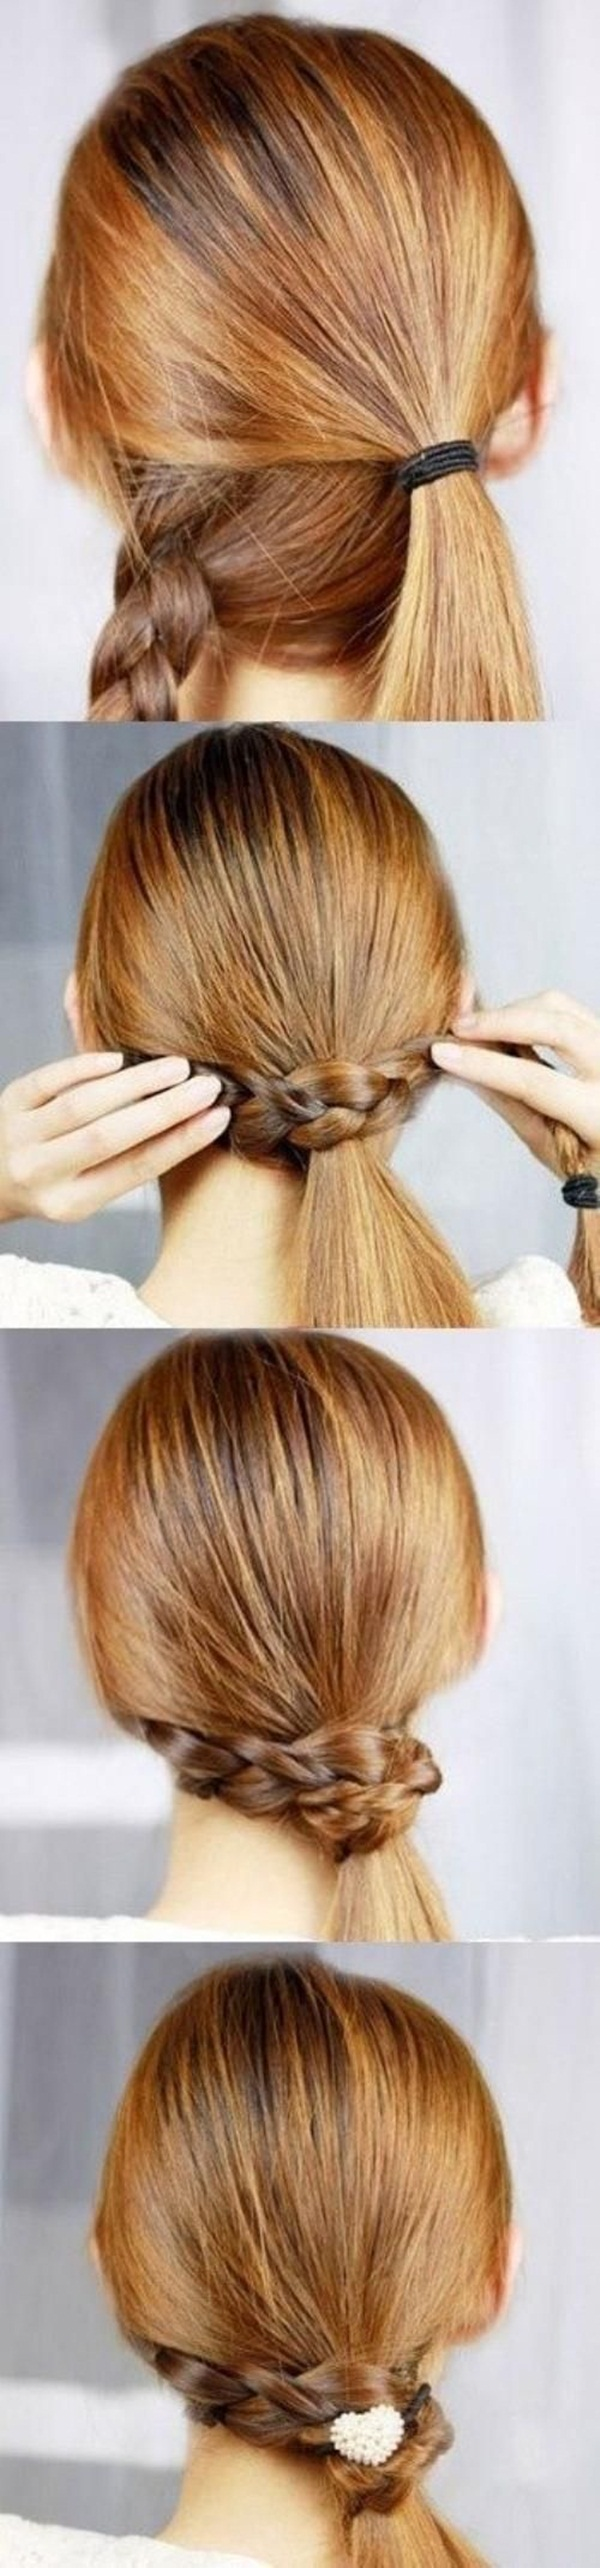 Easy Hairstyles For School (19)